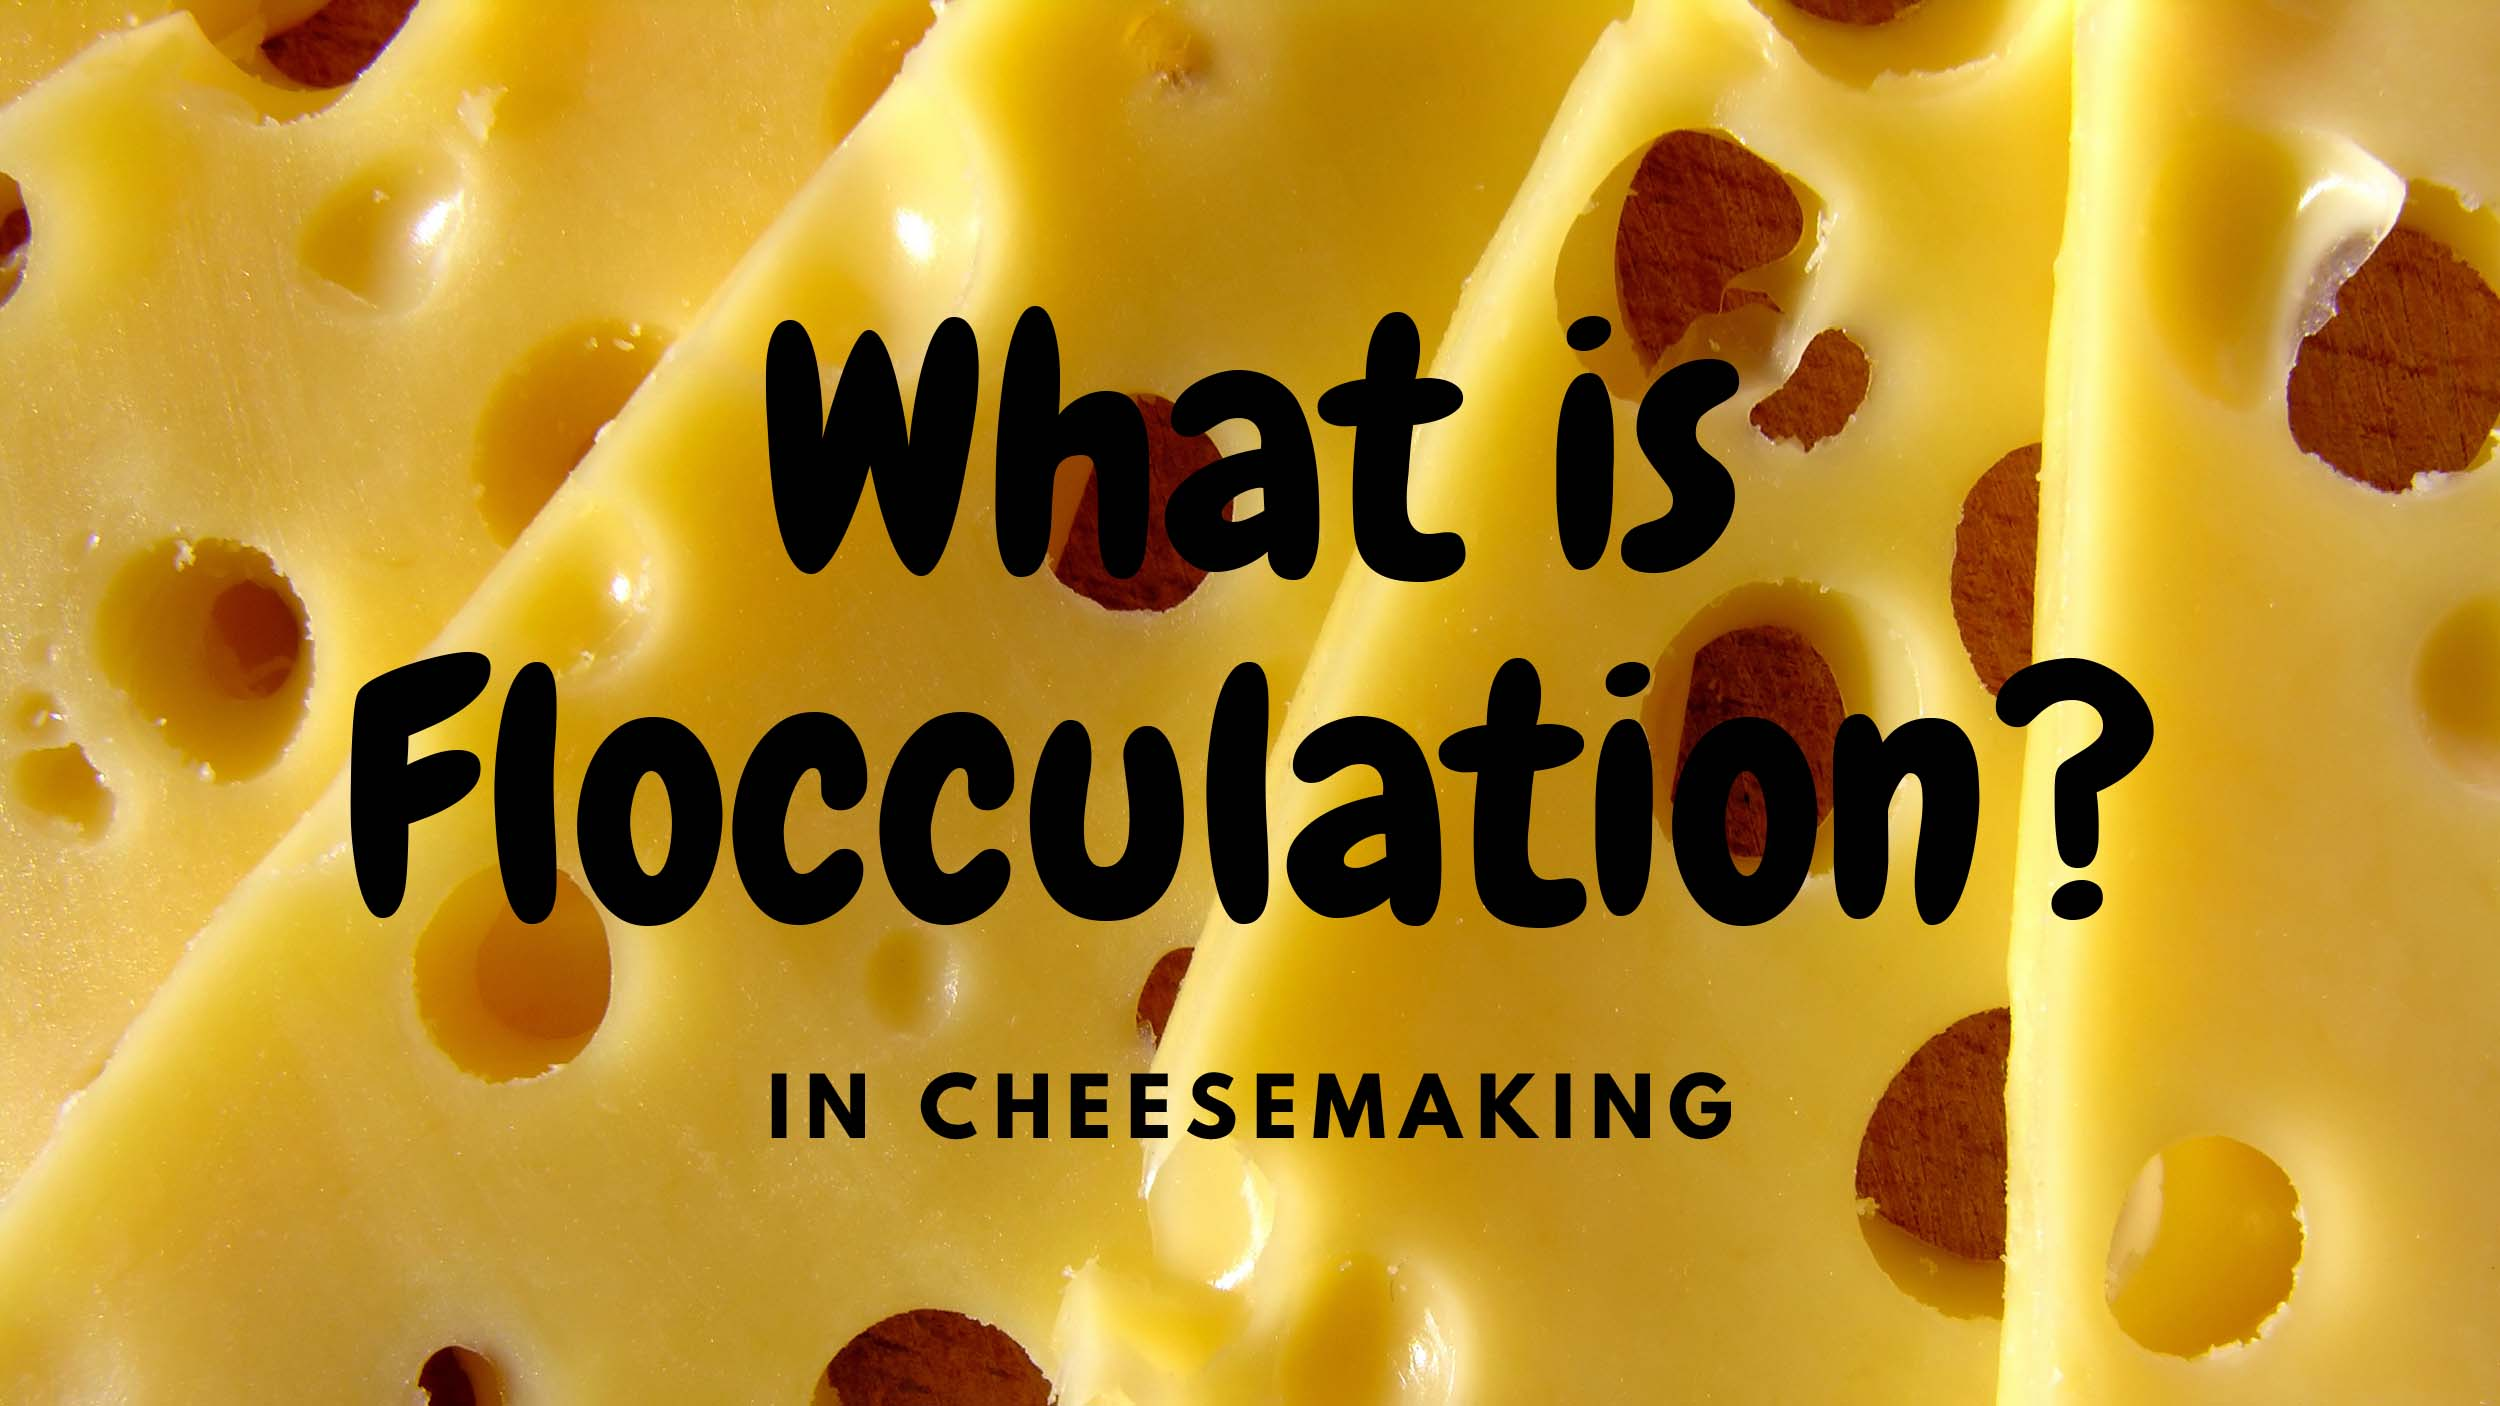 What is Flocculation in Cheesemaking?